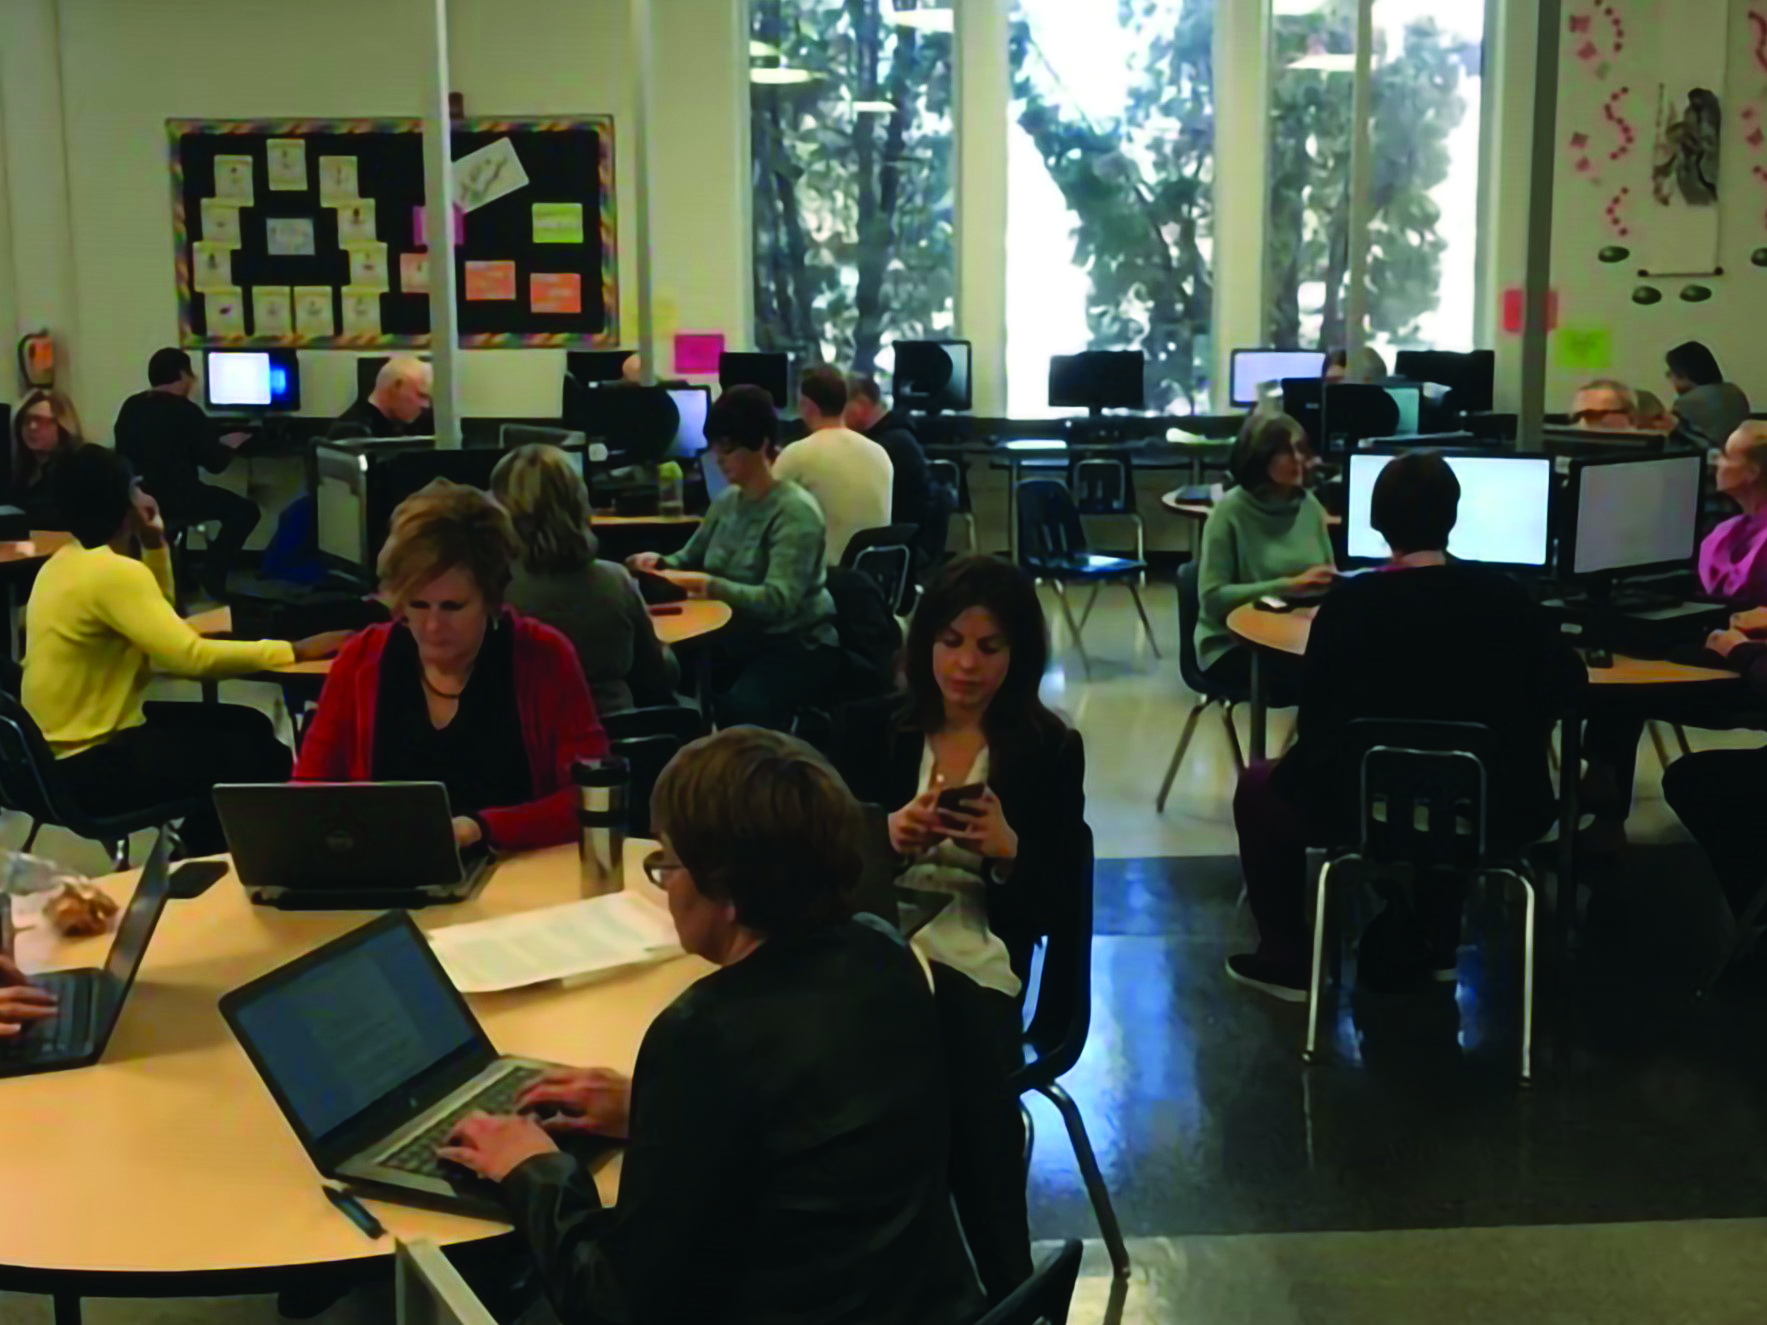 Holy Cross High School teachers participate in the research survey